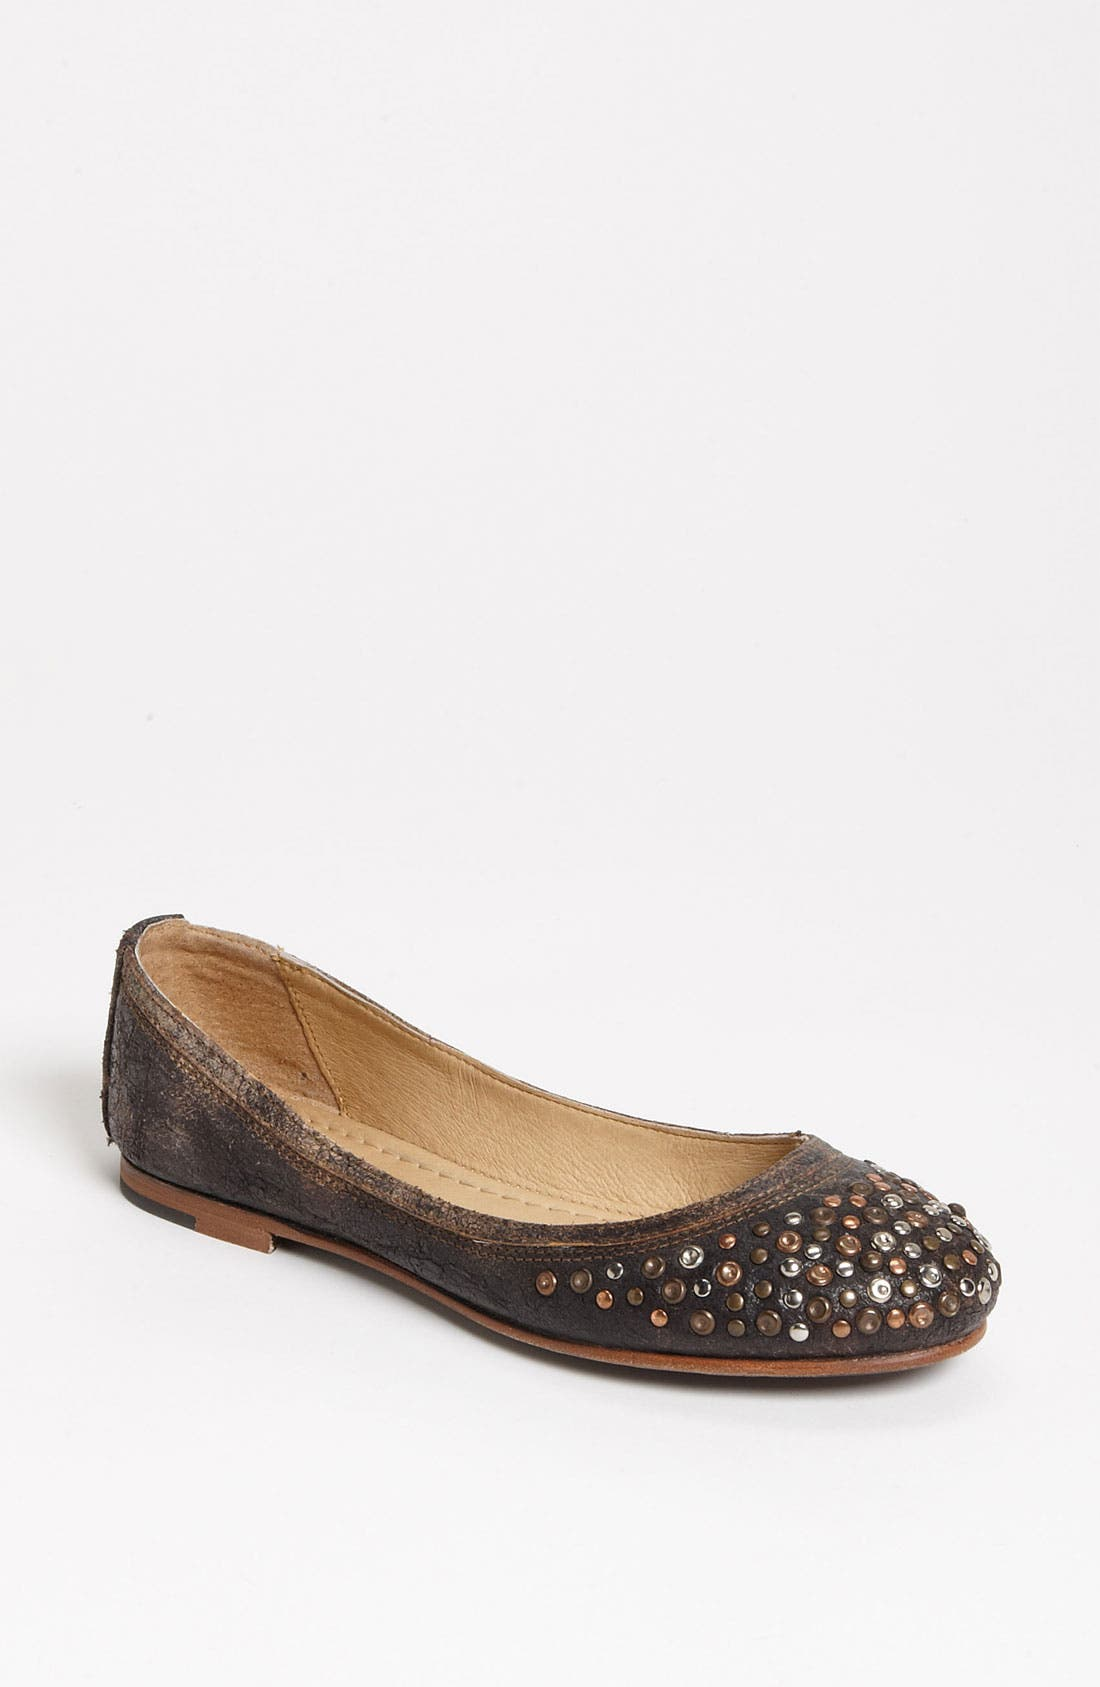 Alternate Image 1 Selected - Frye 'Carson Stud' Flat